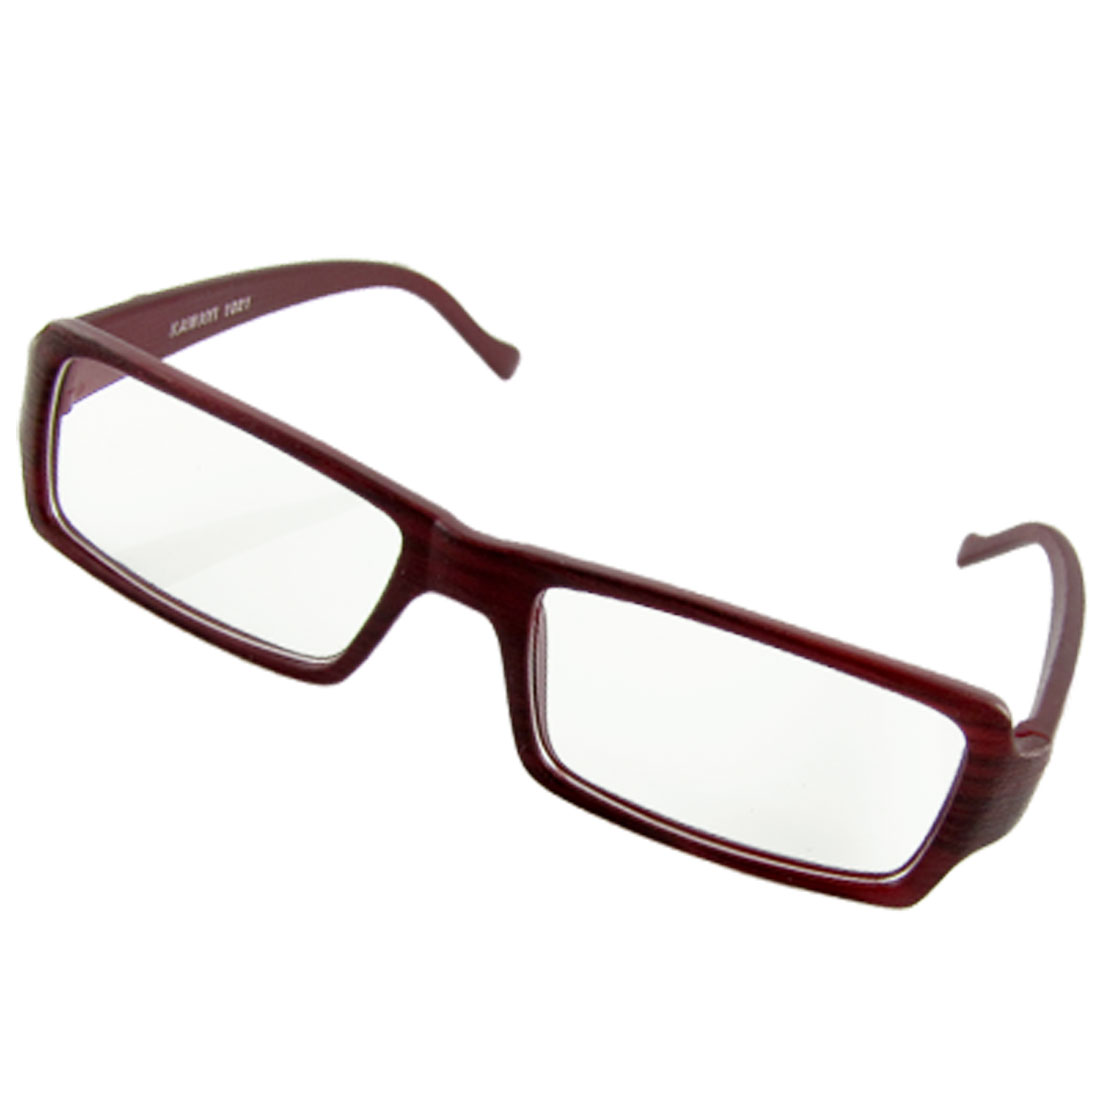 Unisex Burgundy Wood Grain Full Rim Eyeglasses Plain Spectacles